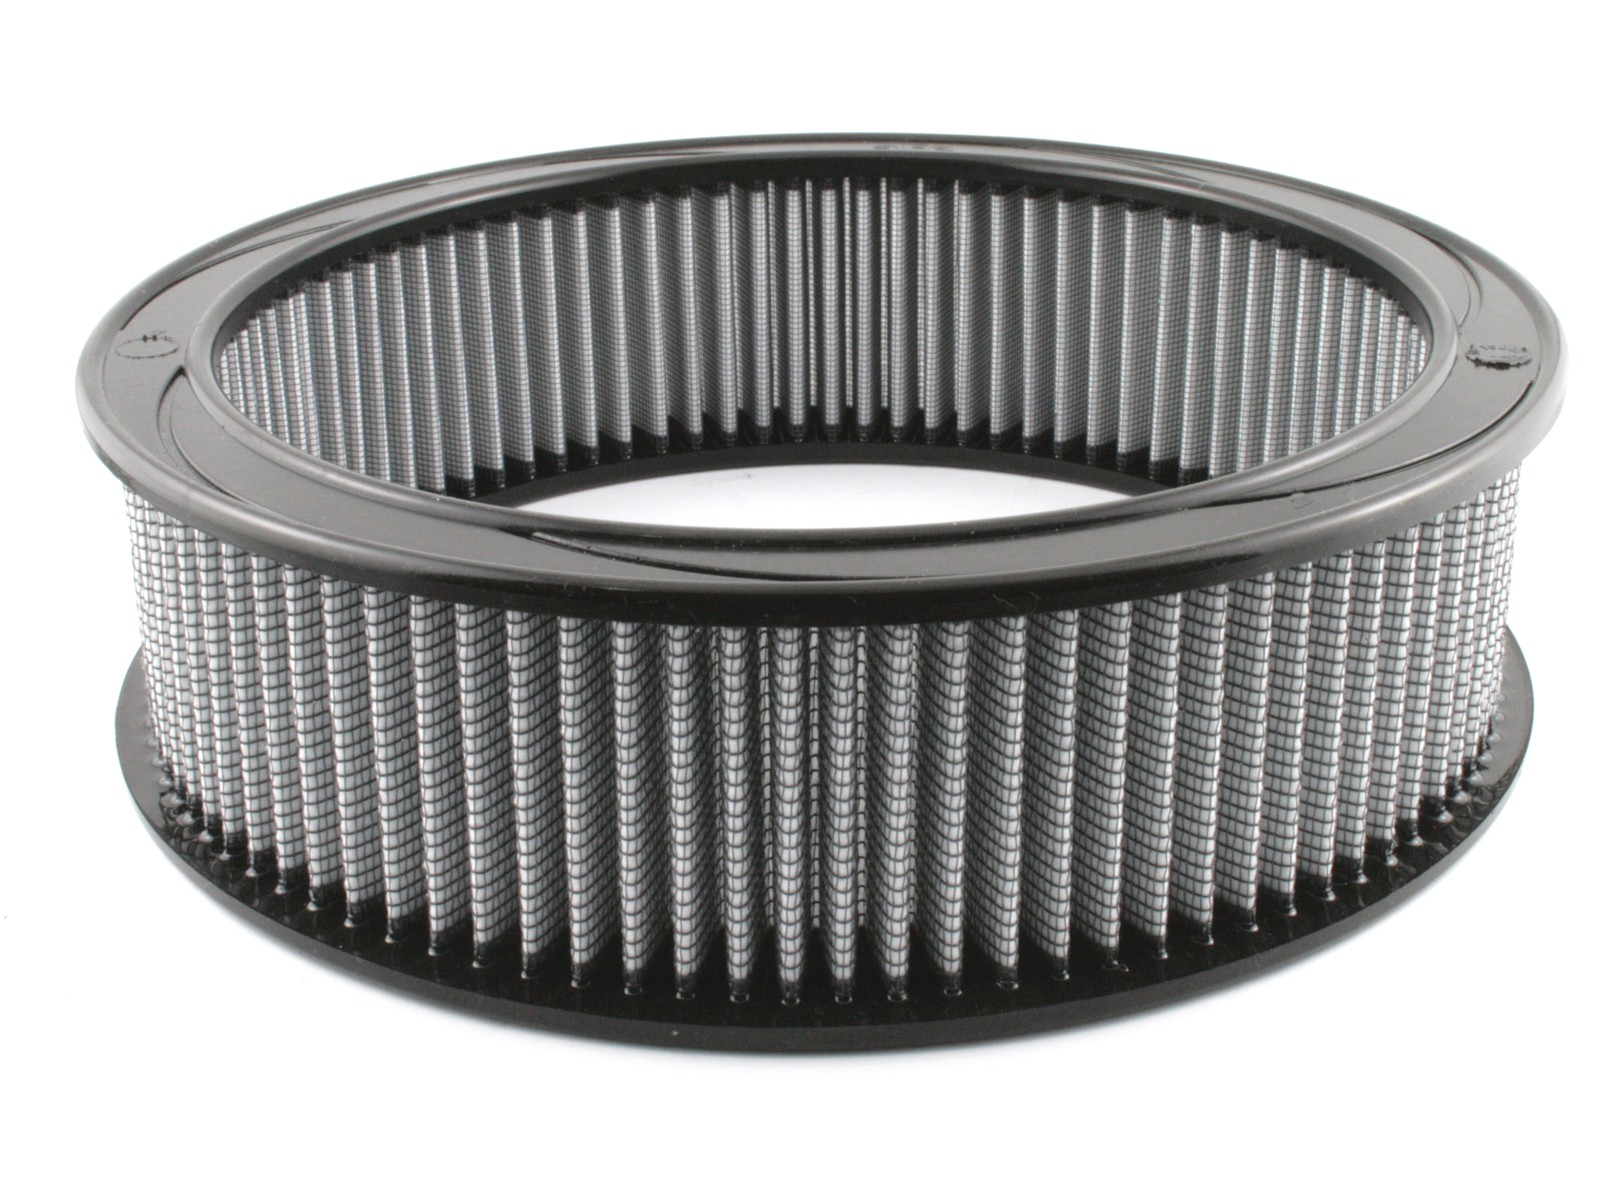 aFe POWER 11-10001 Magnum FLOW Pro DRY S Air Filter